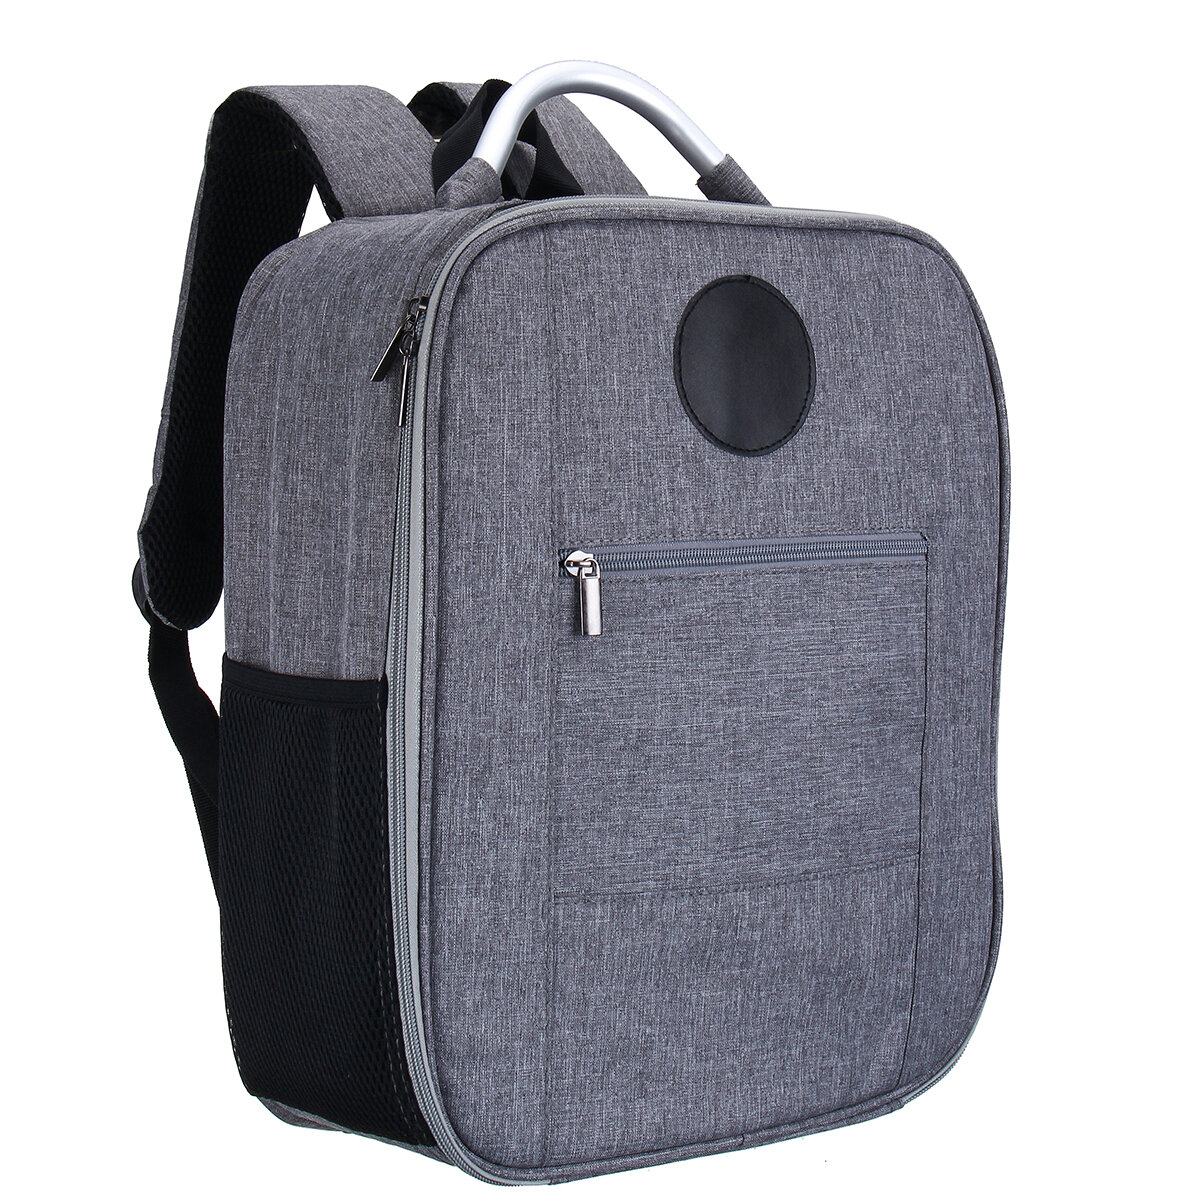 17L Outdoor Portable Drone Shoulder Backpack Carrying Case Storage Bag For Xiaomi Fimi A3